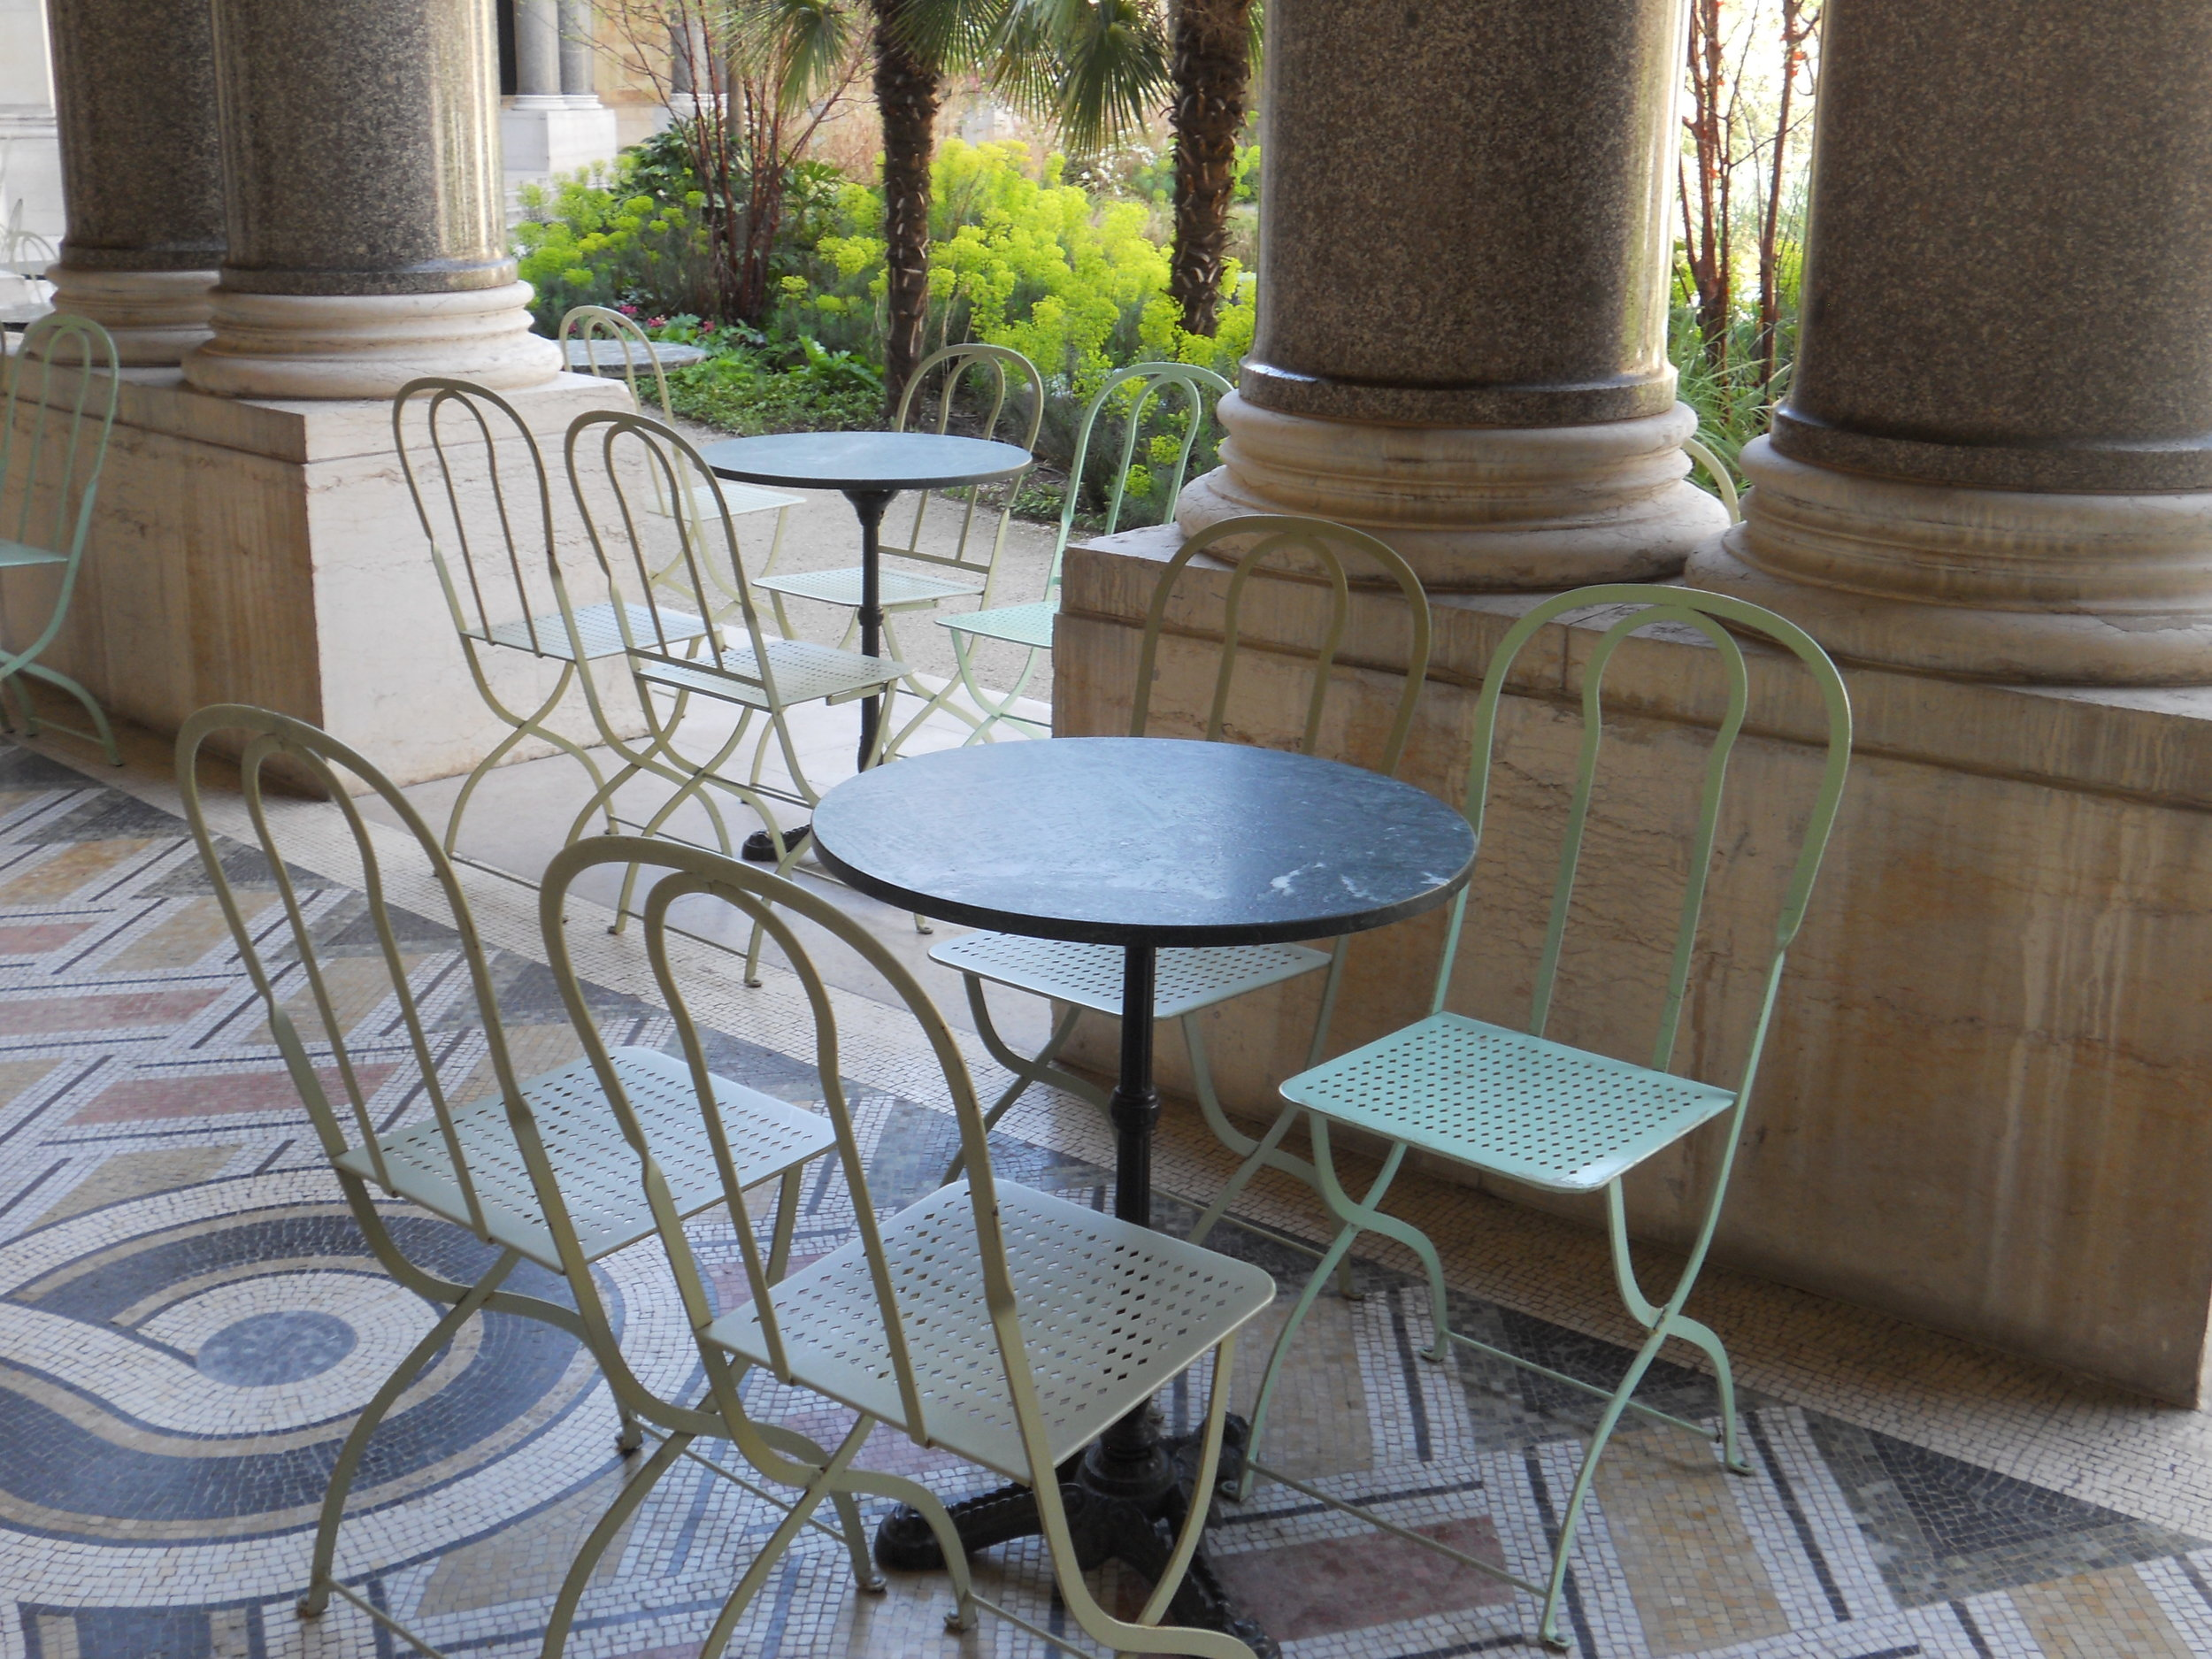 Bistro seating outside museum cafe overlooks garden